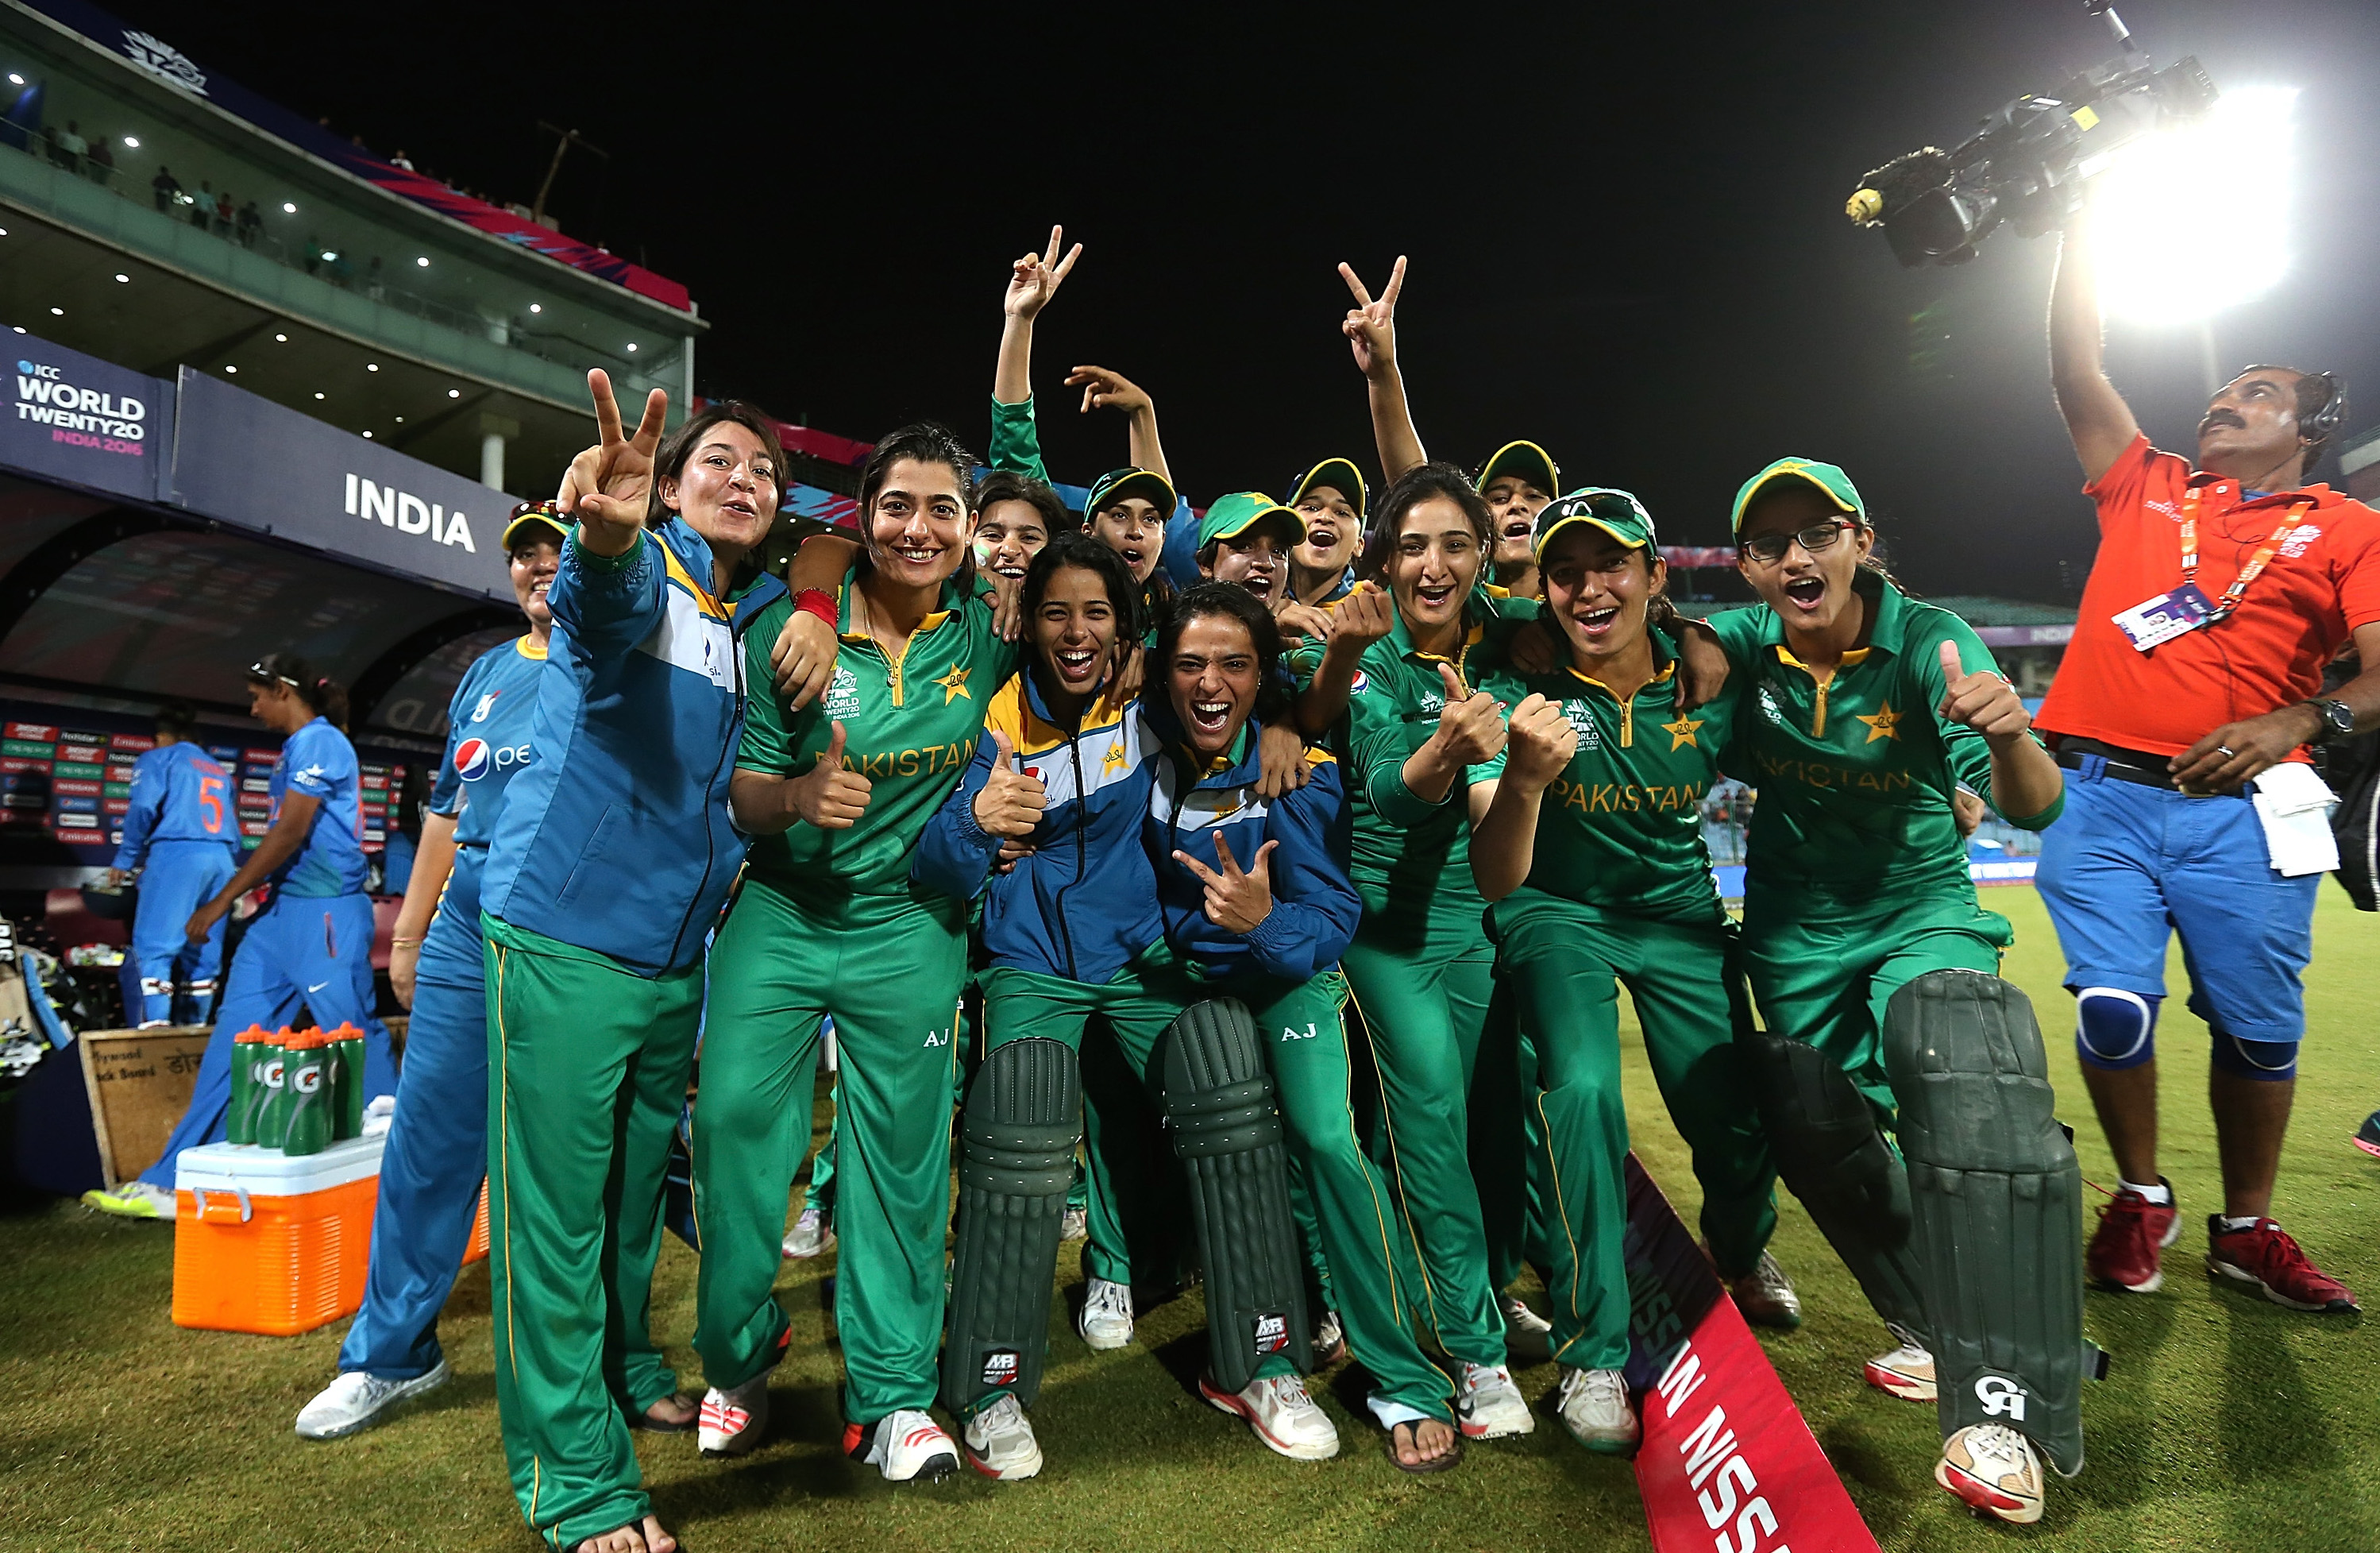 """""""DELHI, INDIA - MARCH 19: The Pakistan team celebrates victory on the Duckworth Lewis method during the Women's ICC World Twenty20 India 2016 match between India and Pakistan at Feroz Shah Kotla Ground on March 19, 2016 in Delhi, India. (Photo by Jan Kruger-IDI/IDI via Getty Images)"""""""